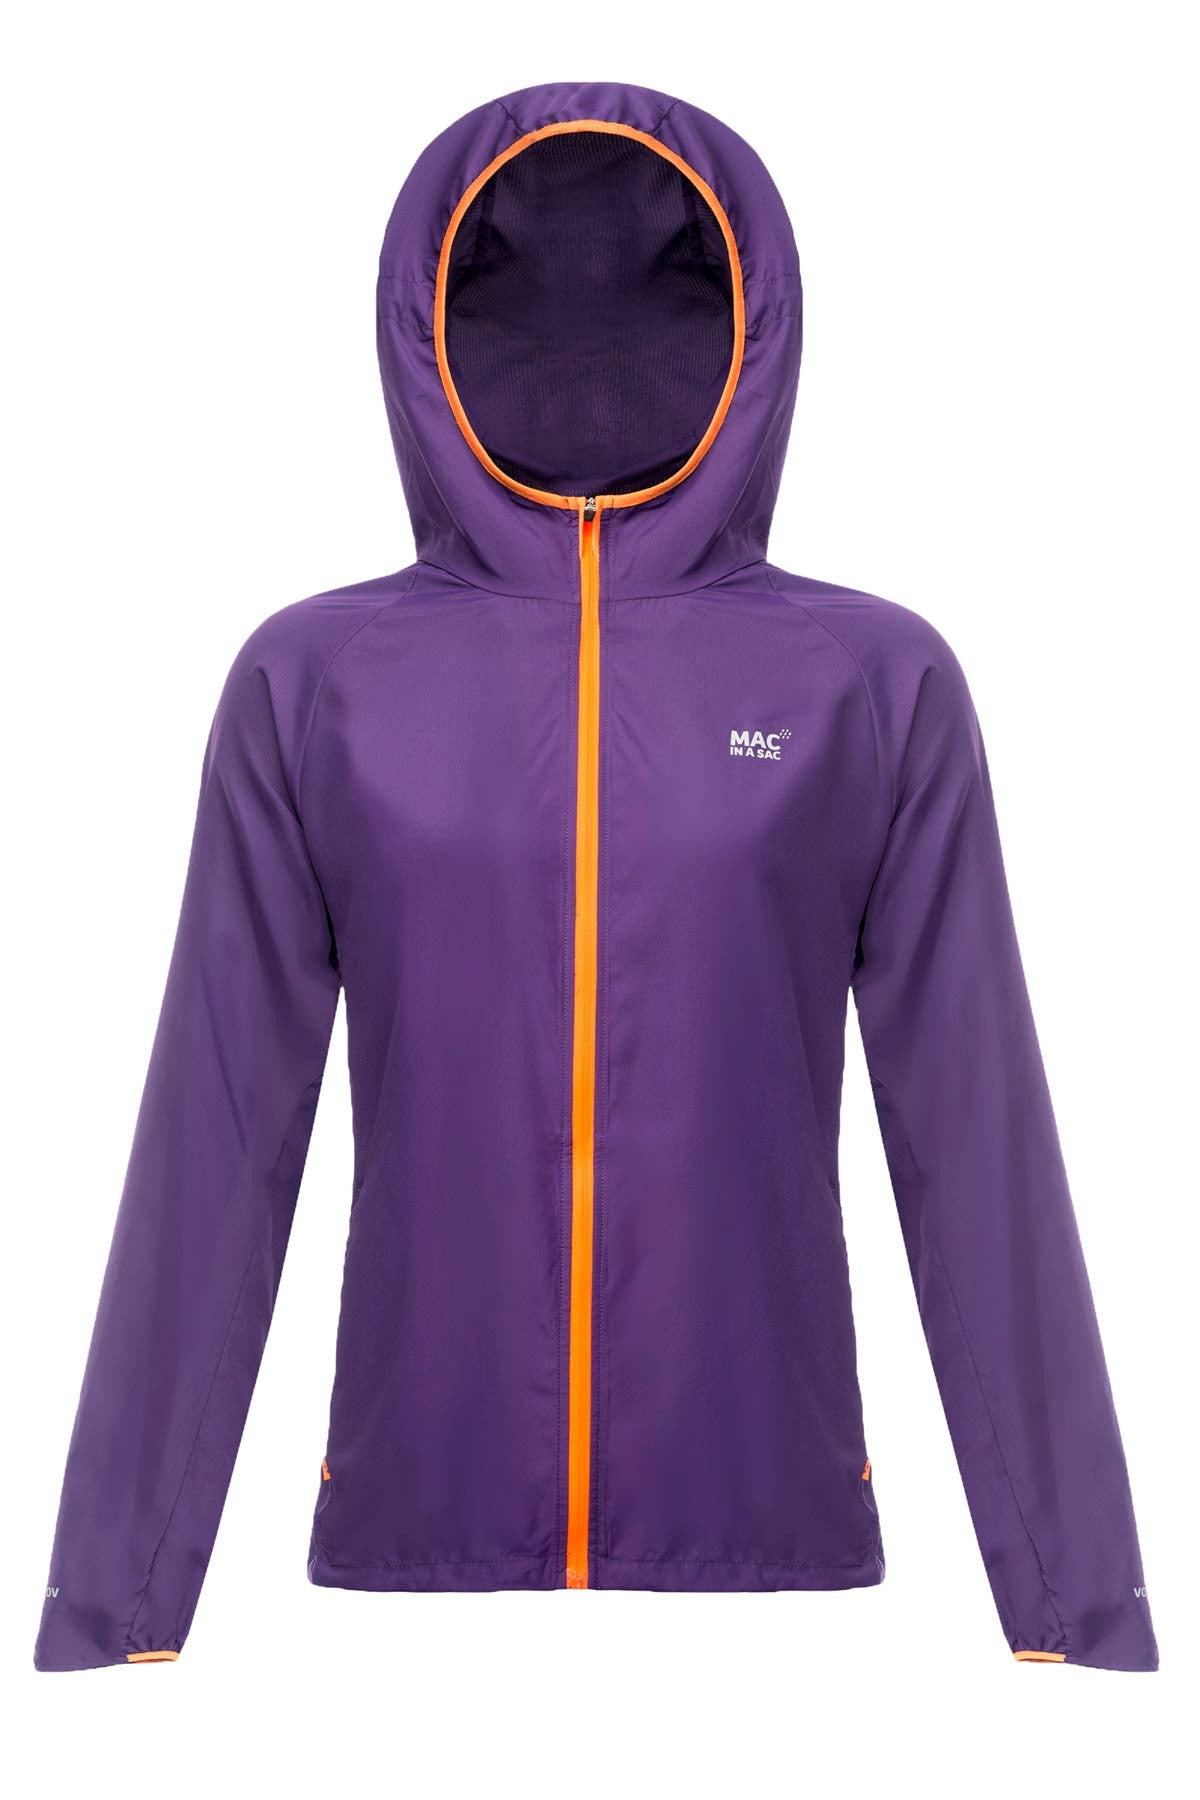 Mac in a Sac ULTRA Breathable Packable Running Jacket Electric Violet